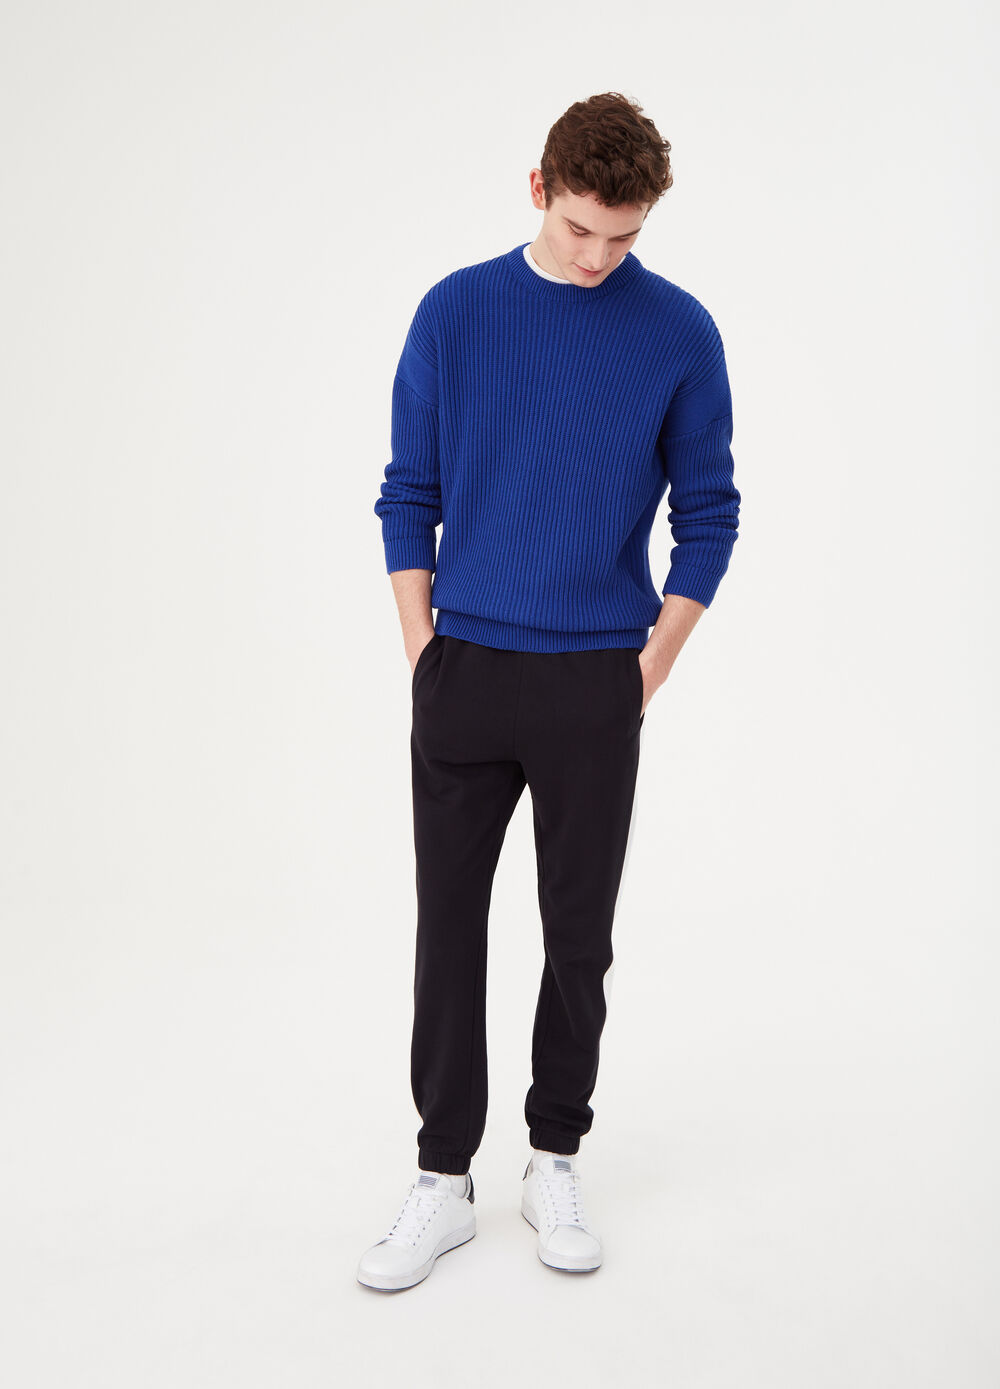 Trousers in 100% cotton with contrasting bands